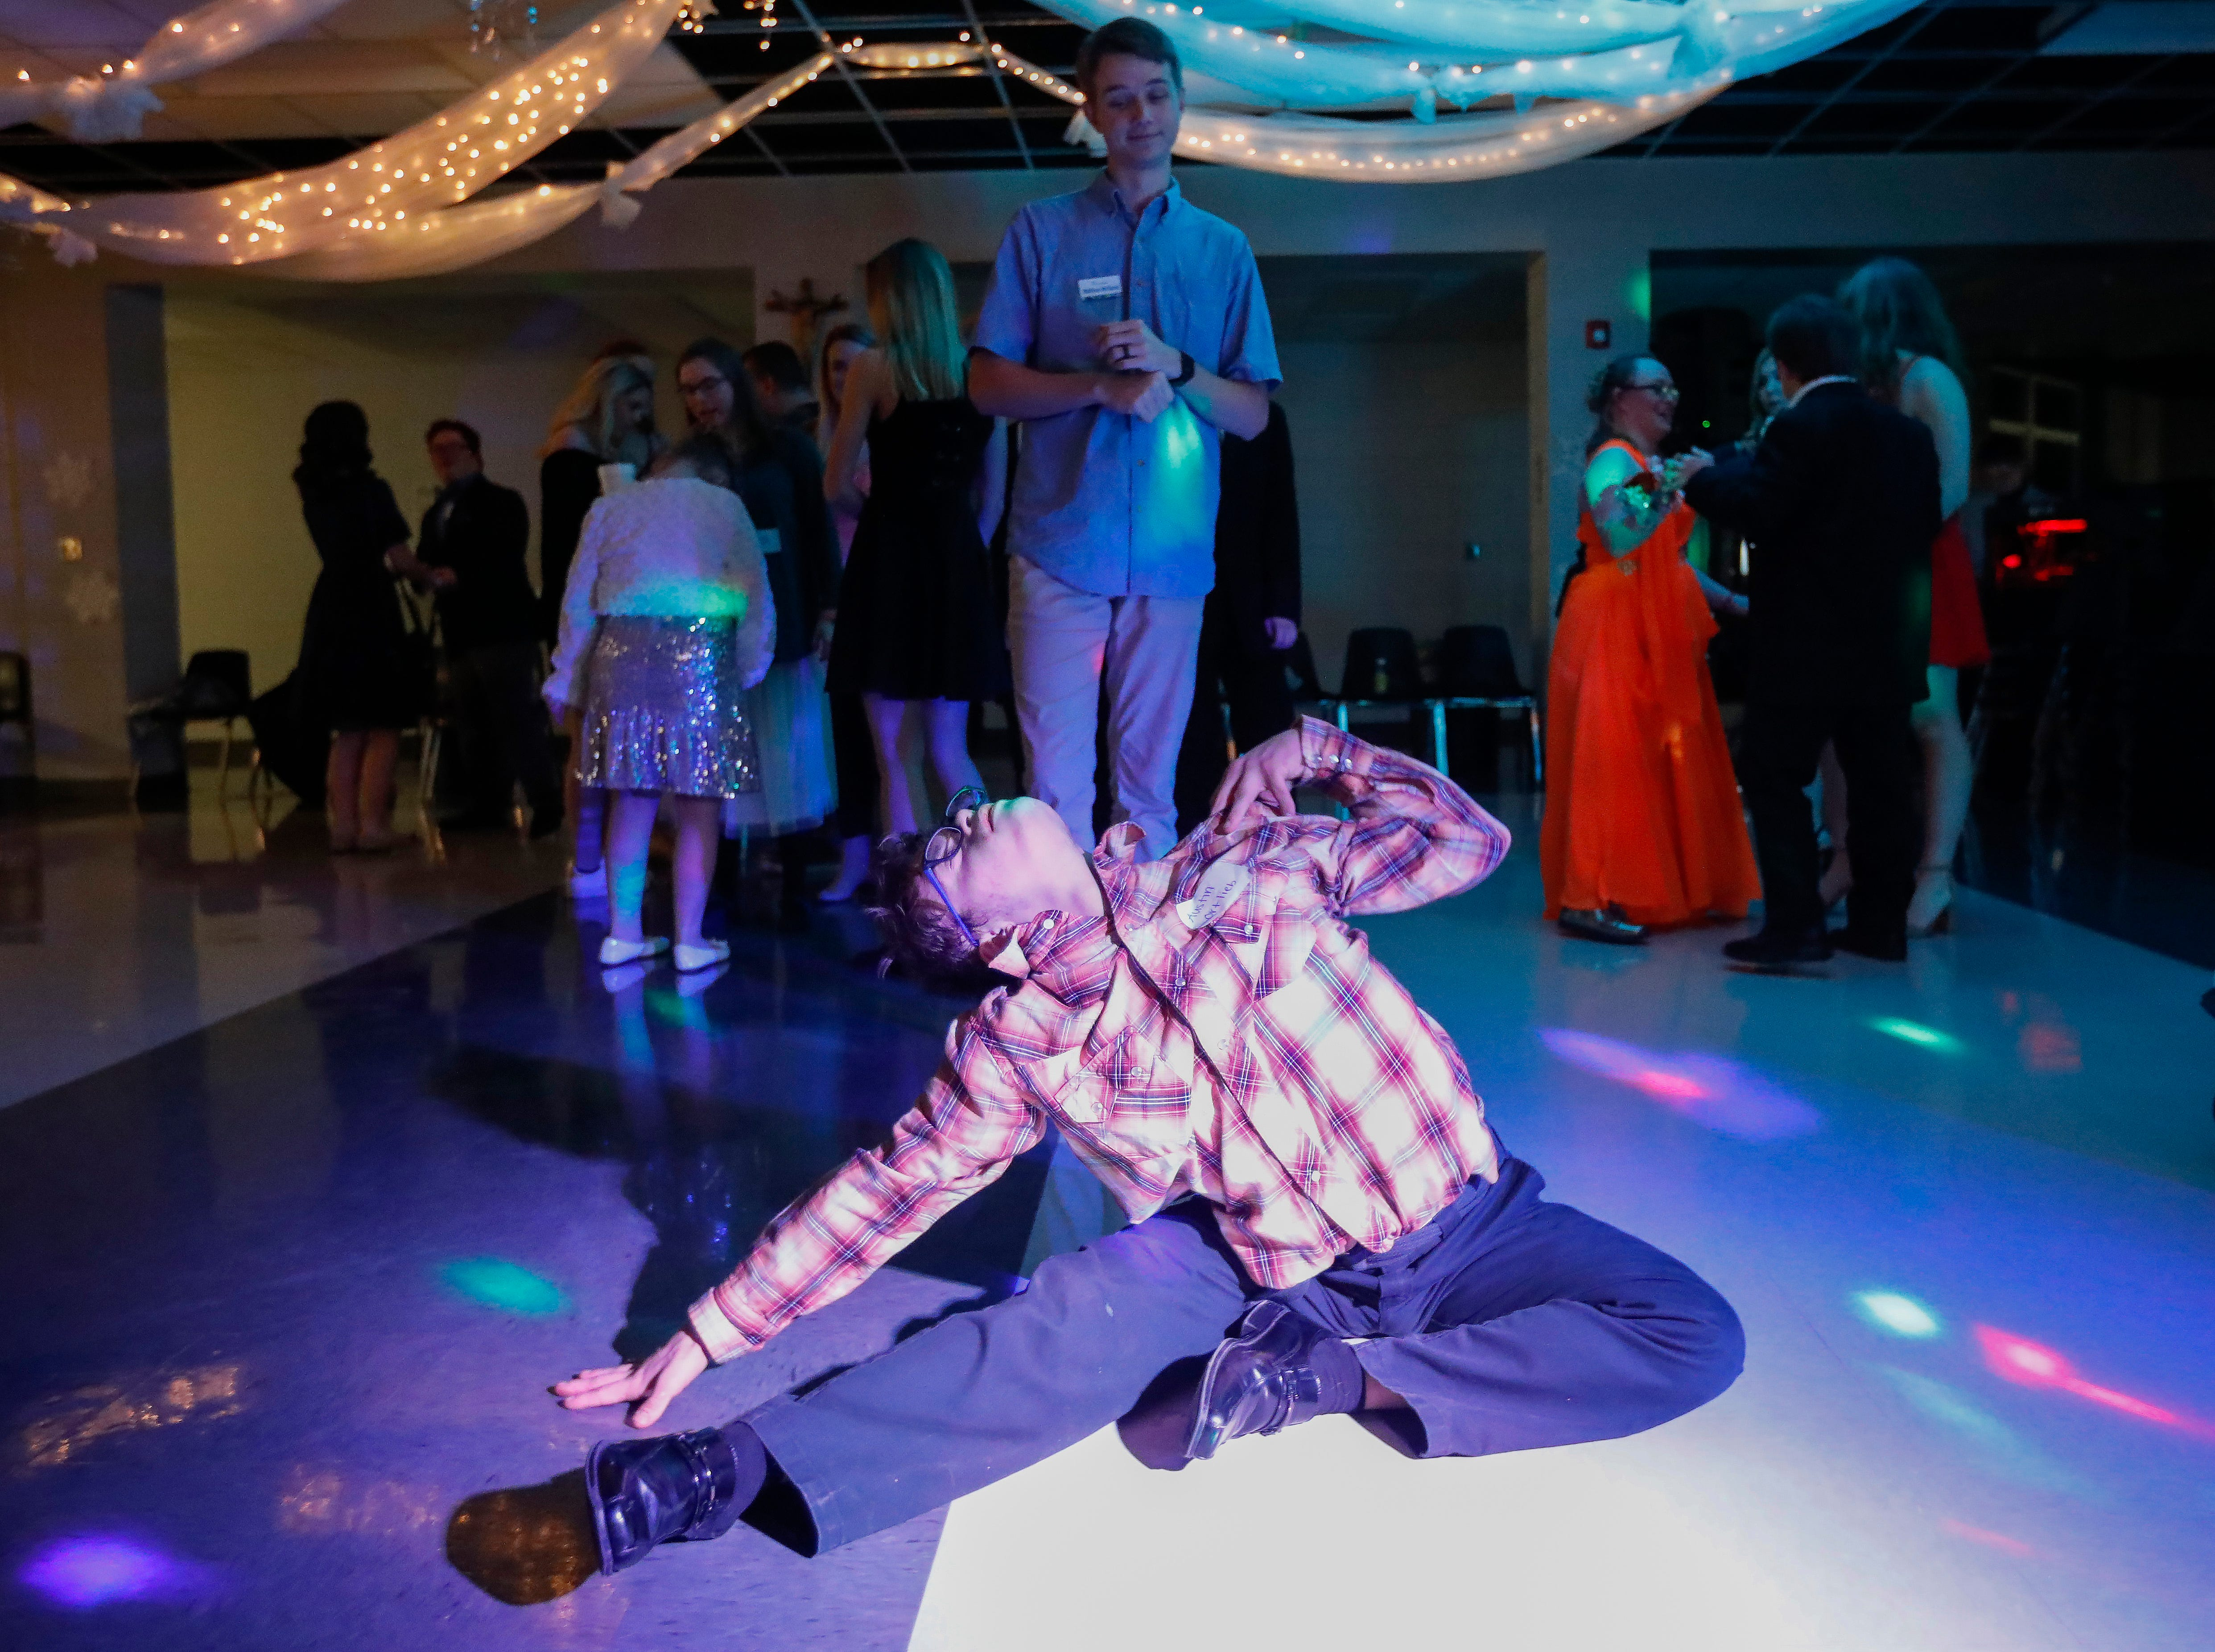 Austin Ortlieb shows off his dance moves during the Camp Barnabas Snow Ball at Springfield Catholic High School on Saturday, Jan. 26, 2019.